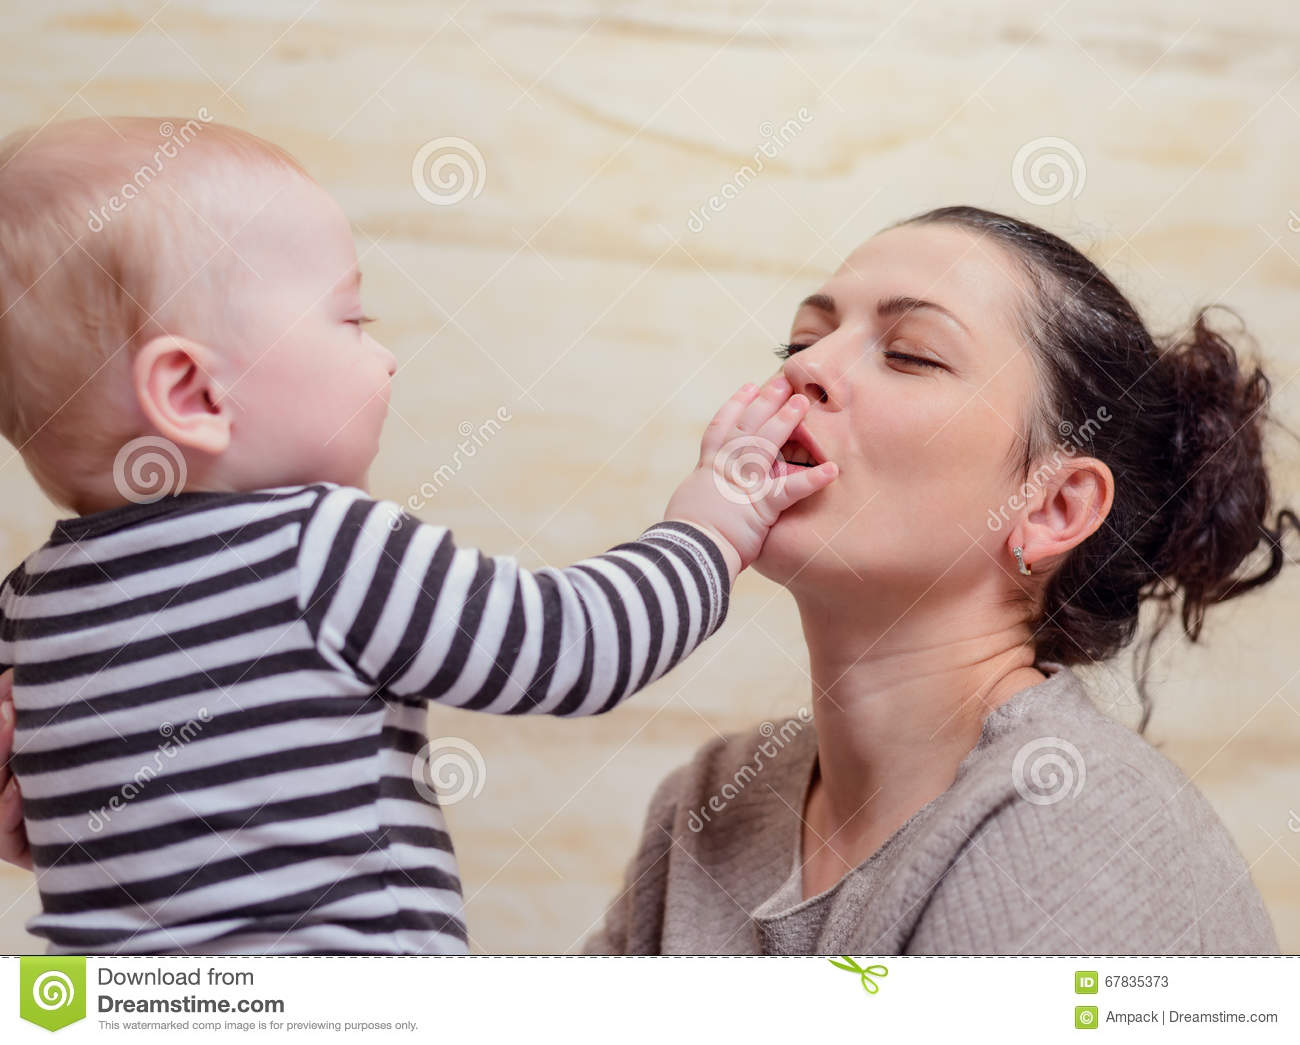 Happy baby touching face of woman